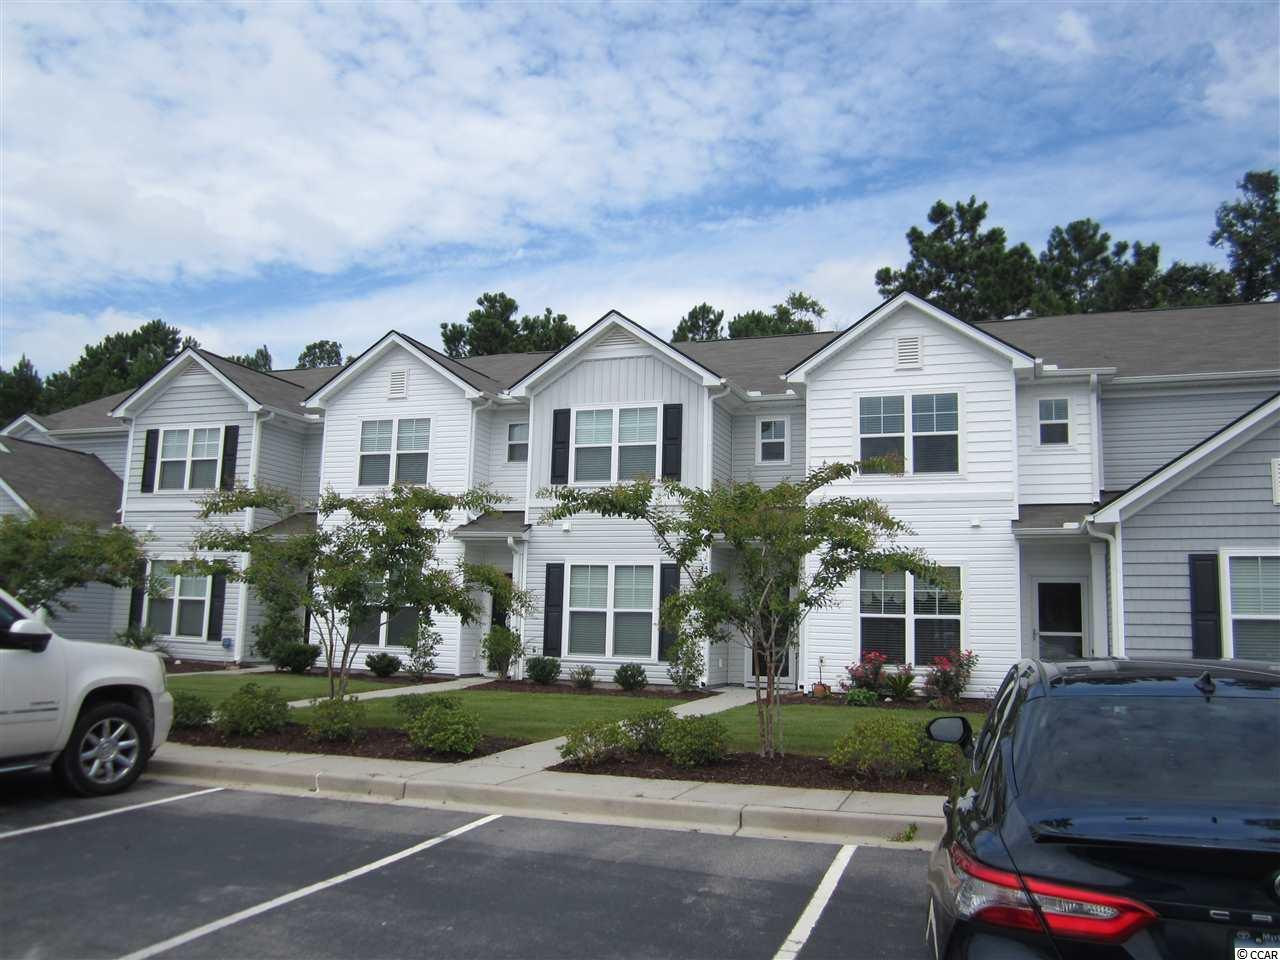 Townhouse MLS:1916282 WELLINGTON - SOCASTEE  177 Olde Towne Way Myrtle Beach SC